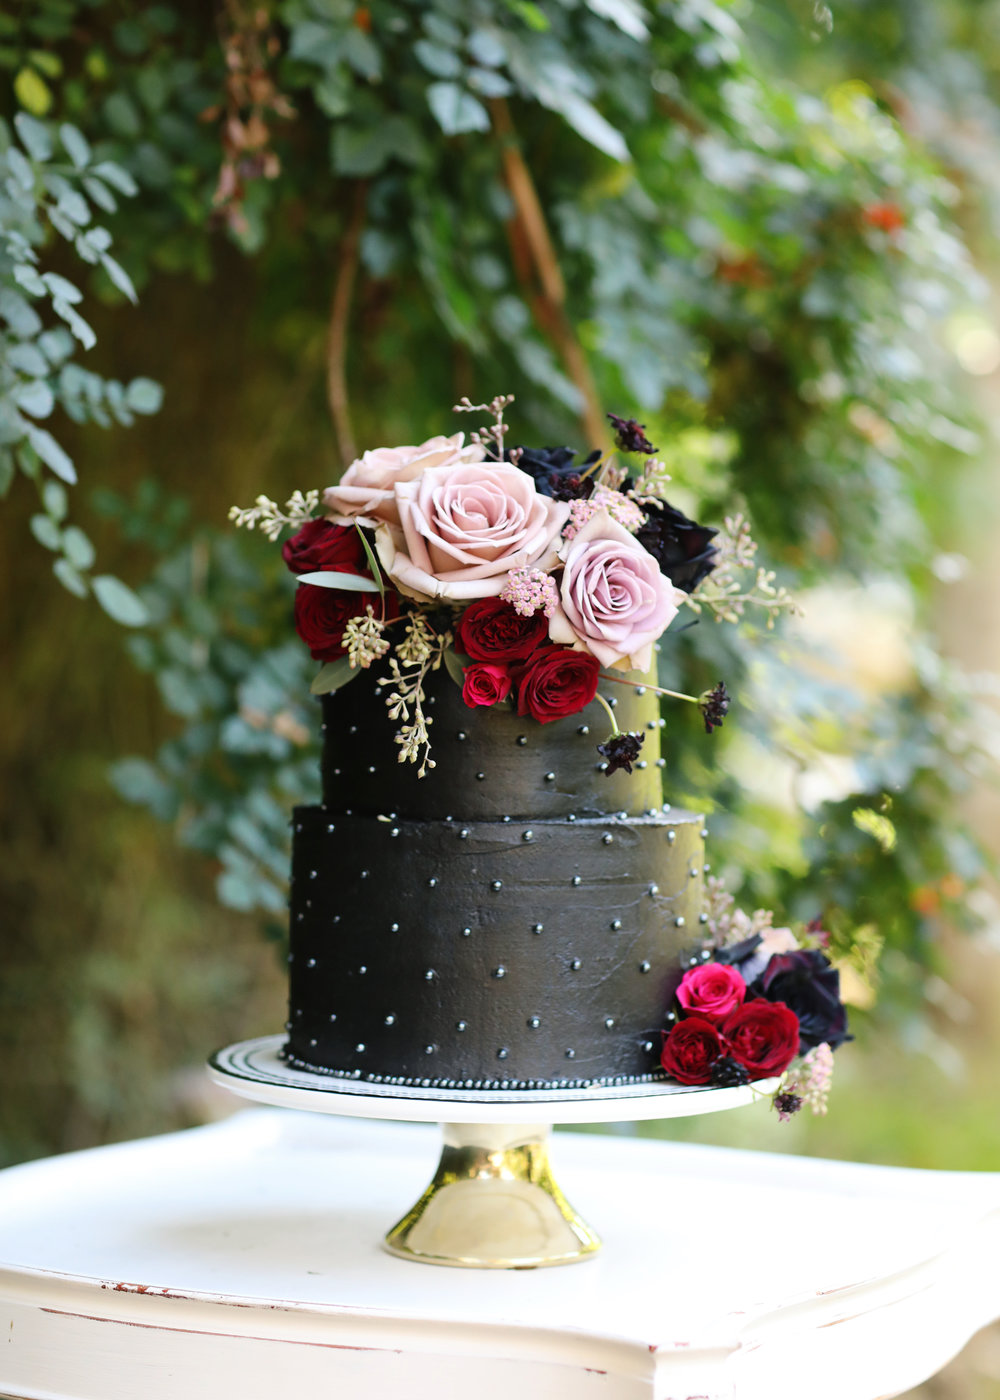 Black wedding cake decorated with flowers on a gold pedestal cake plate.